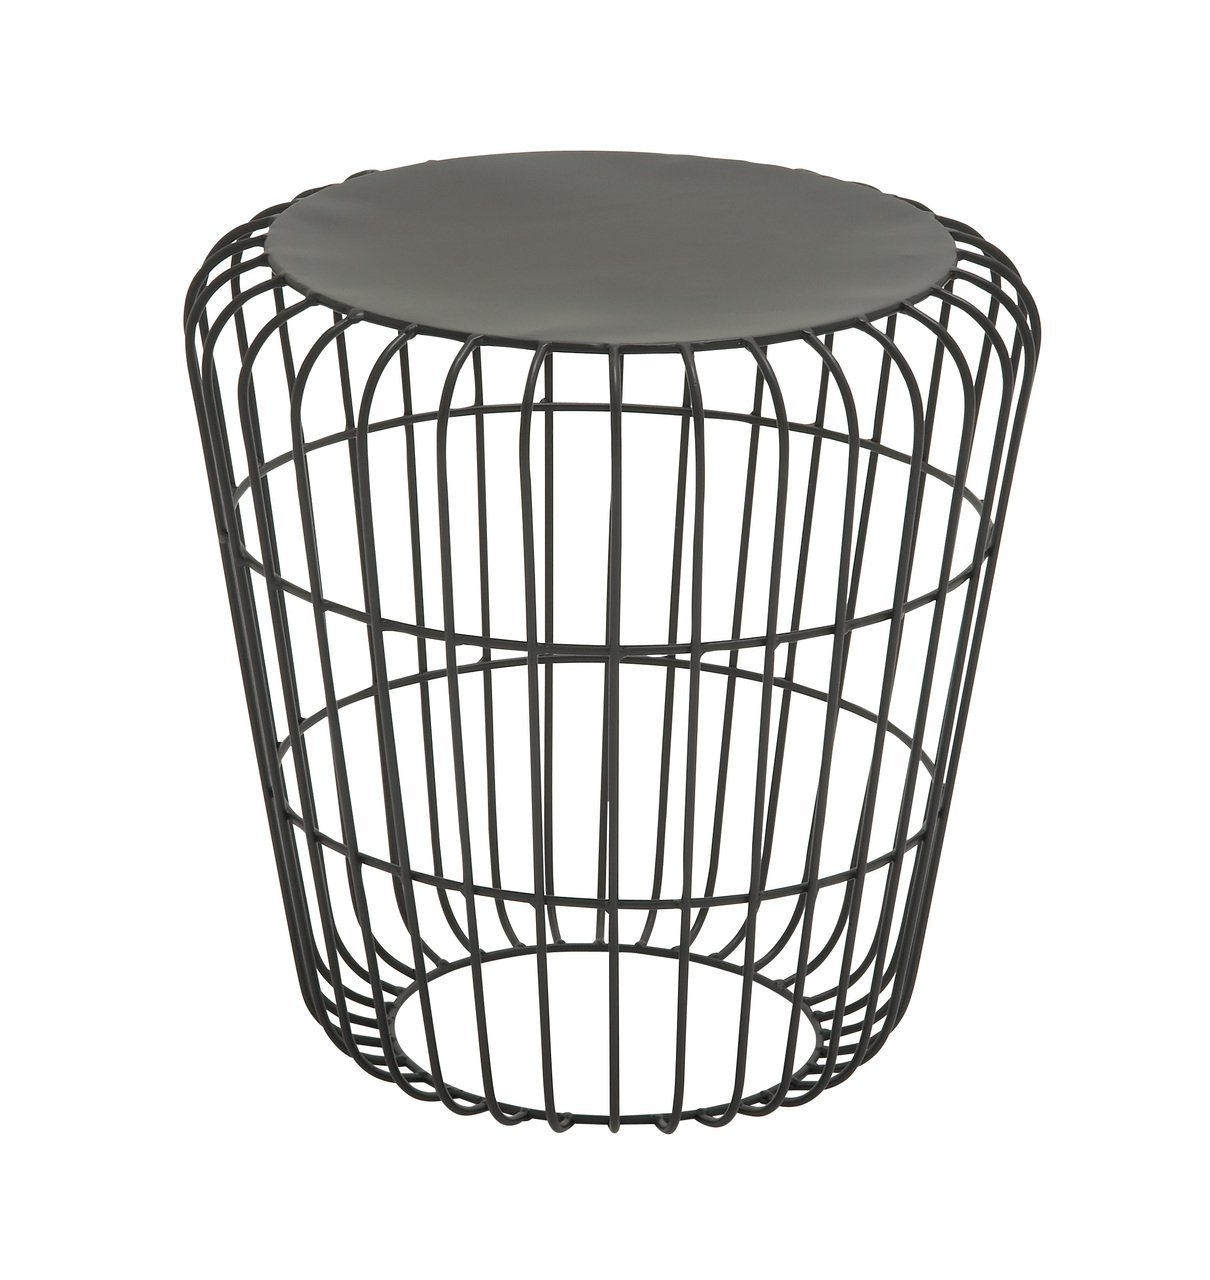 small metal accent table find outdoor get quotations deco navy blue chair bedroom lamps solid wood farmhouse vinyl placemats target black coffee sheesham console bar dining set